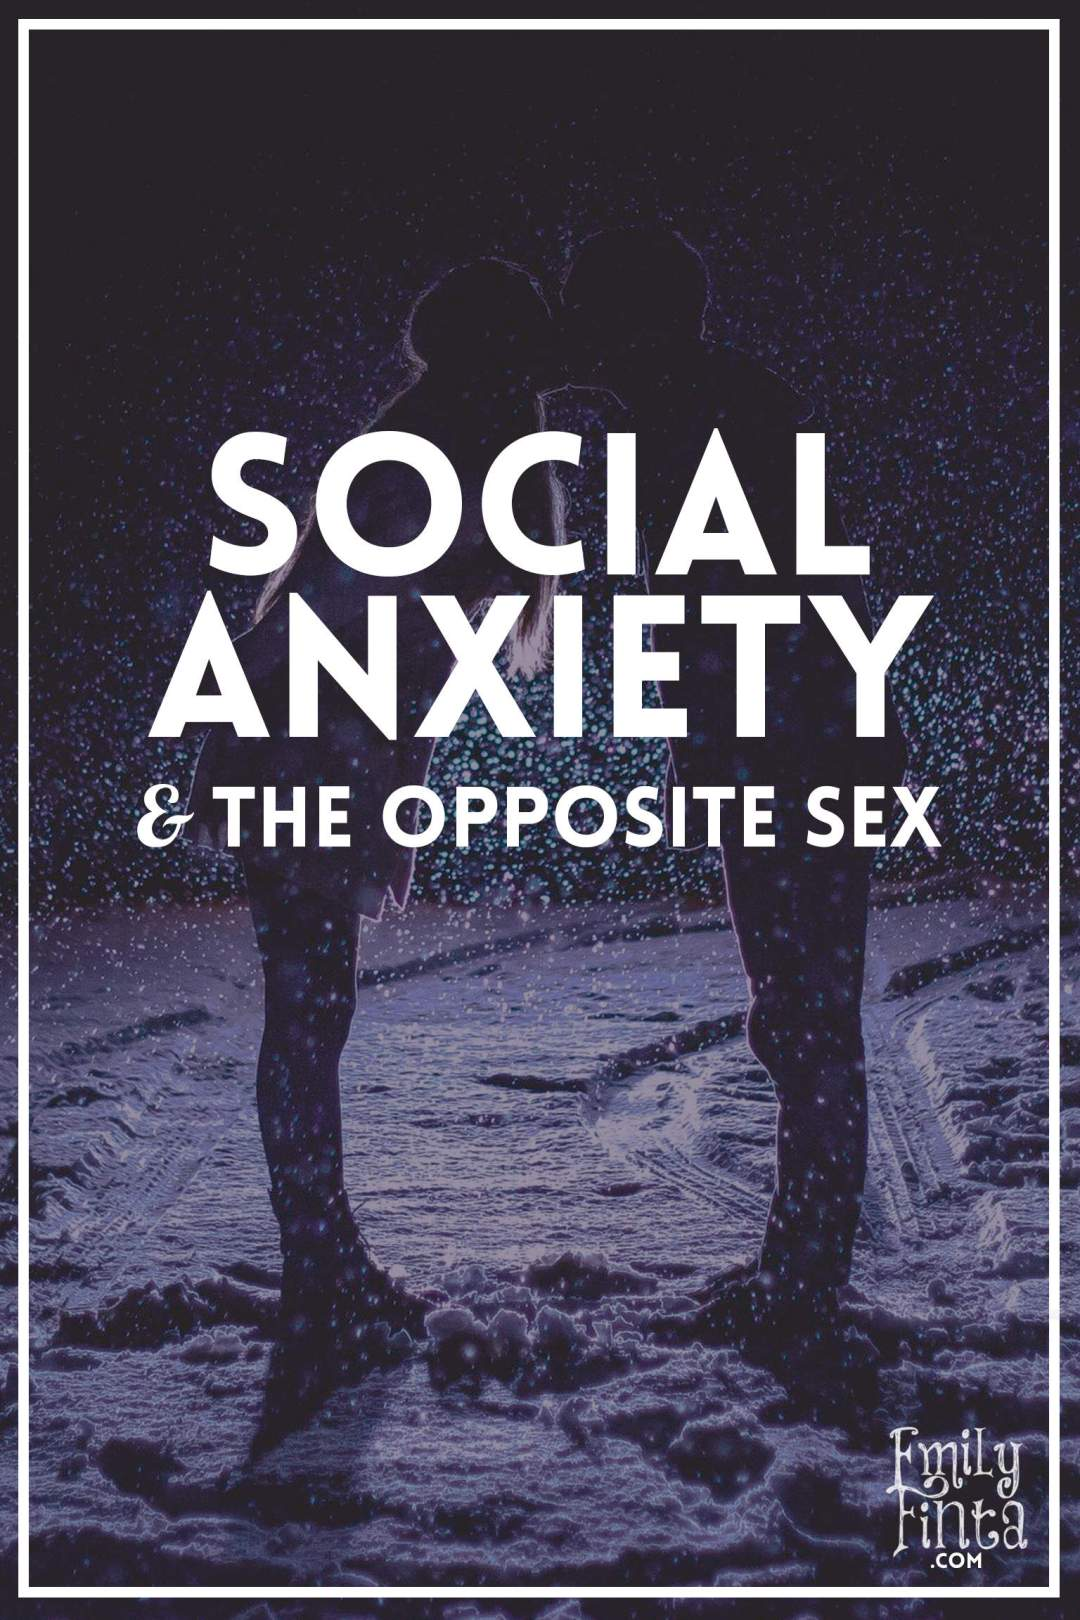 Emily Finta - Social Anxiety & the Opposite Sex